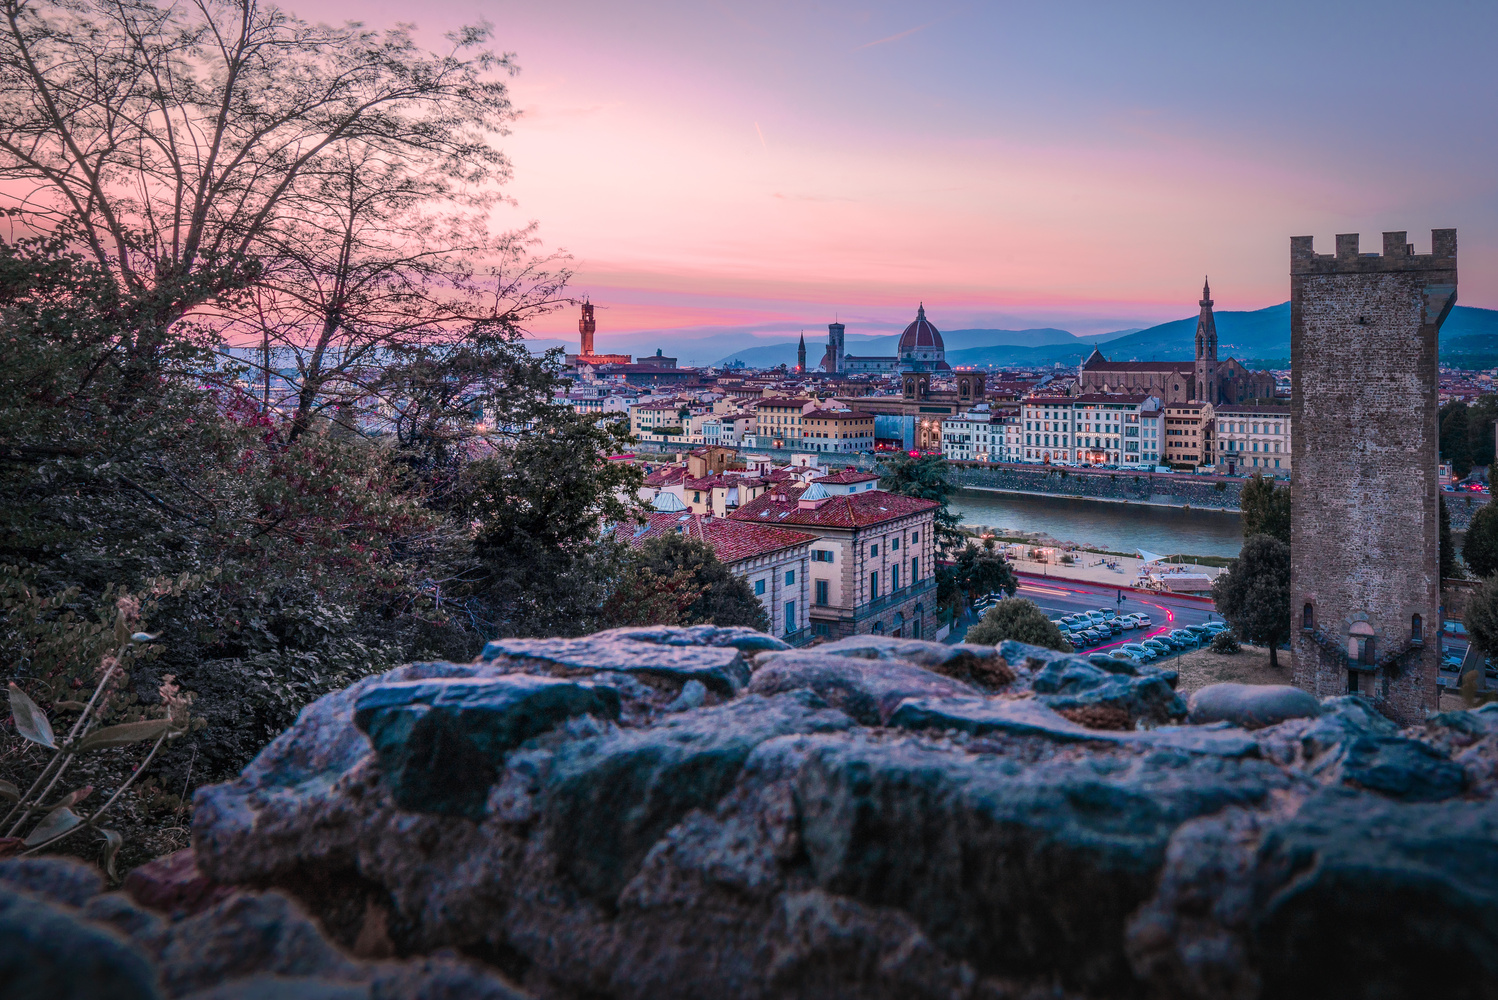 Florence Italy by Evgeni Nedelchev